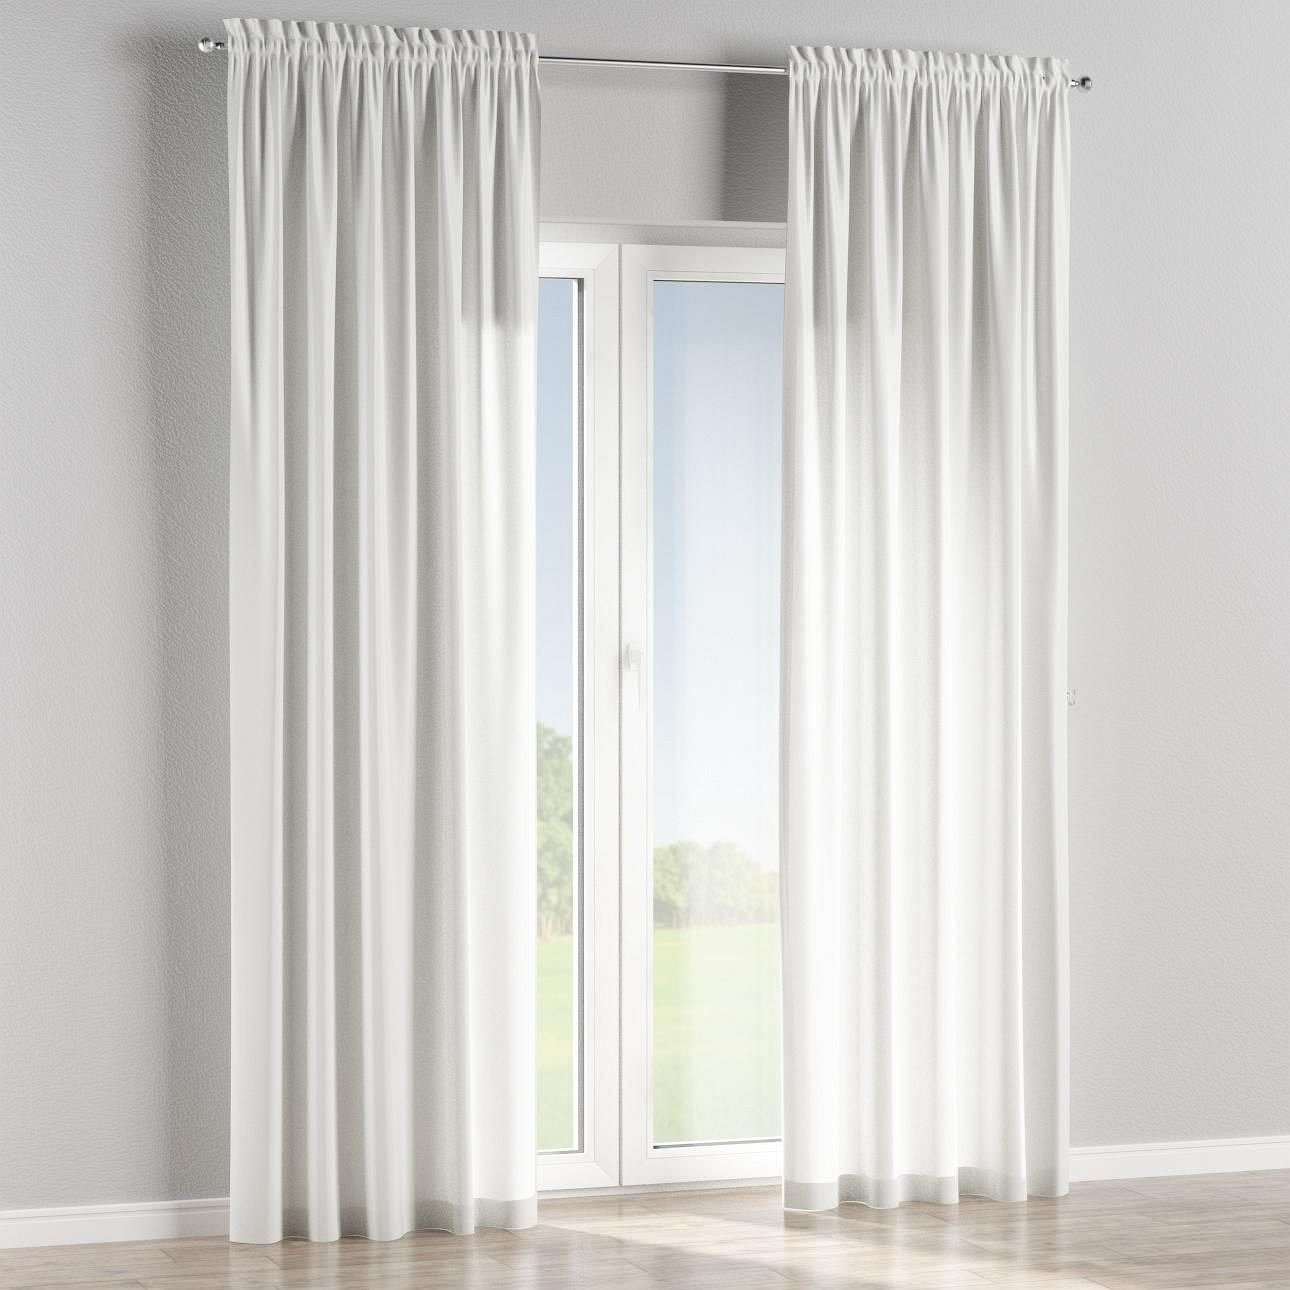 Slot and frill curtains in collection SALE, fabric: 141-09